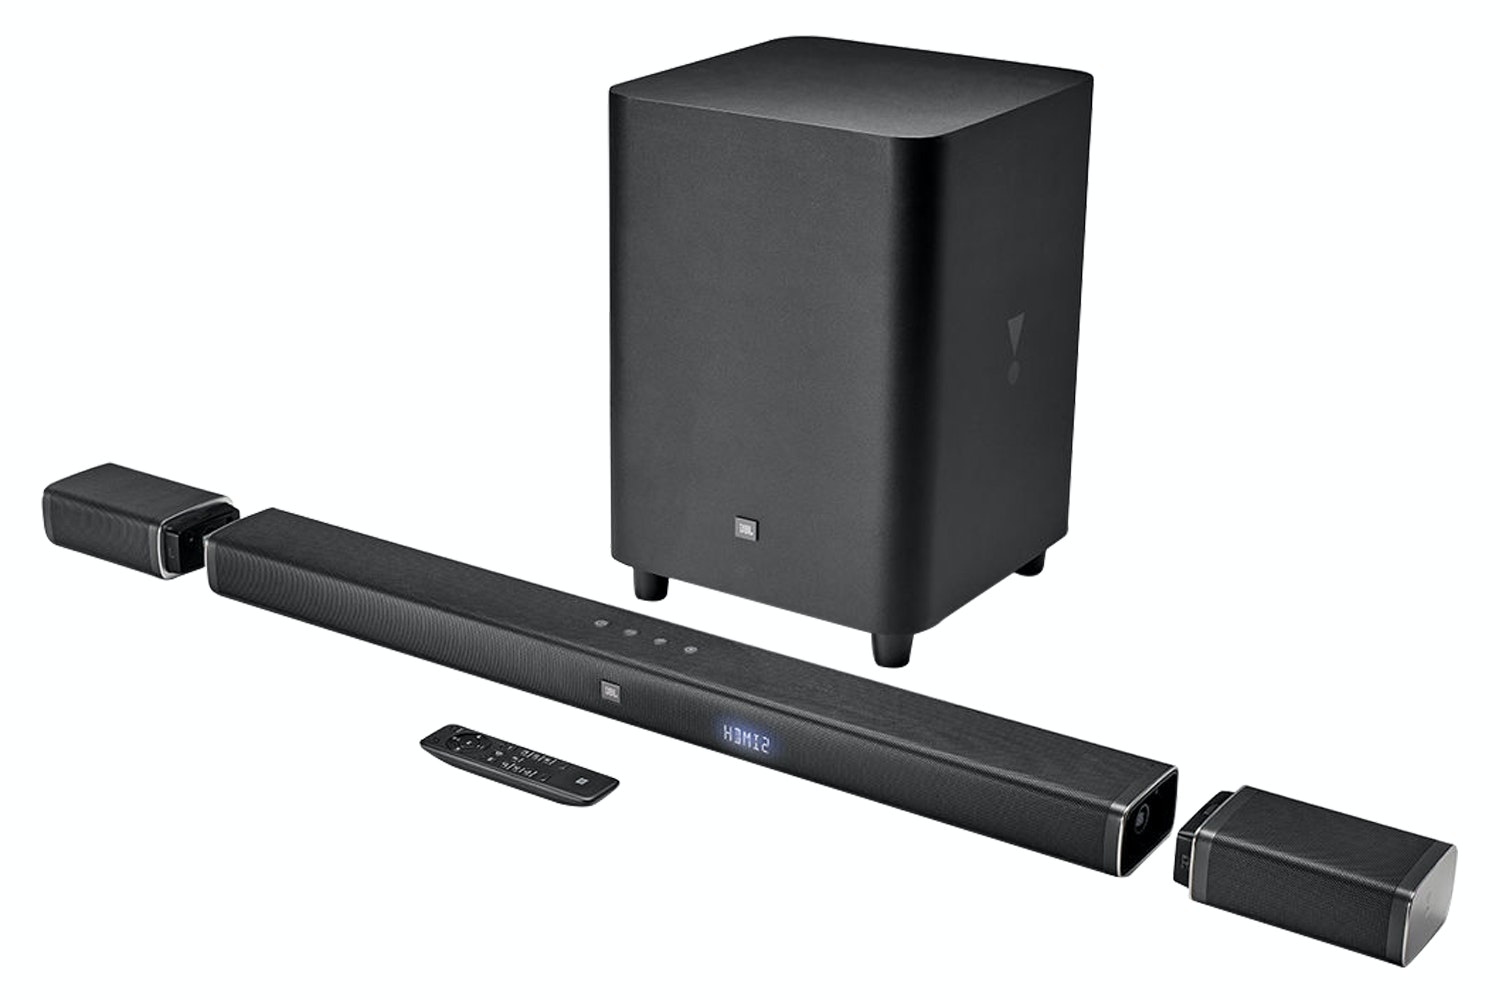 JBL 5.1Ch Soundbar with Wireless Subwoofer